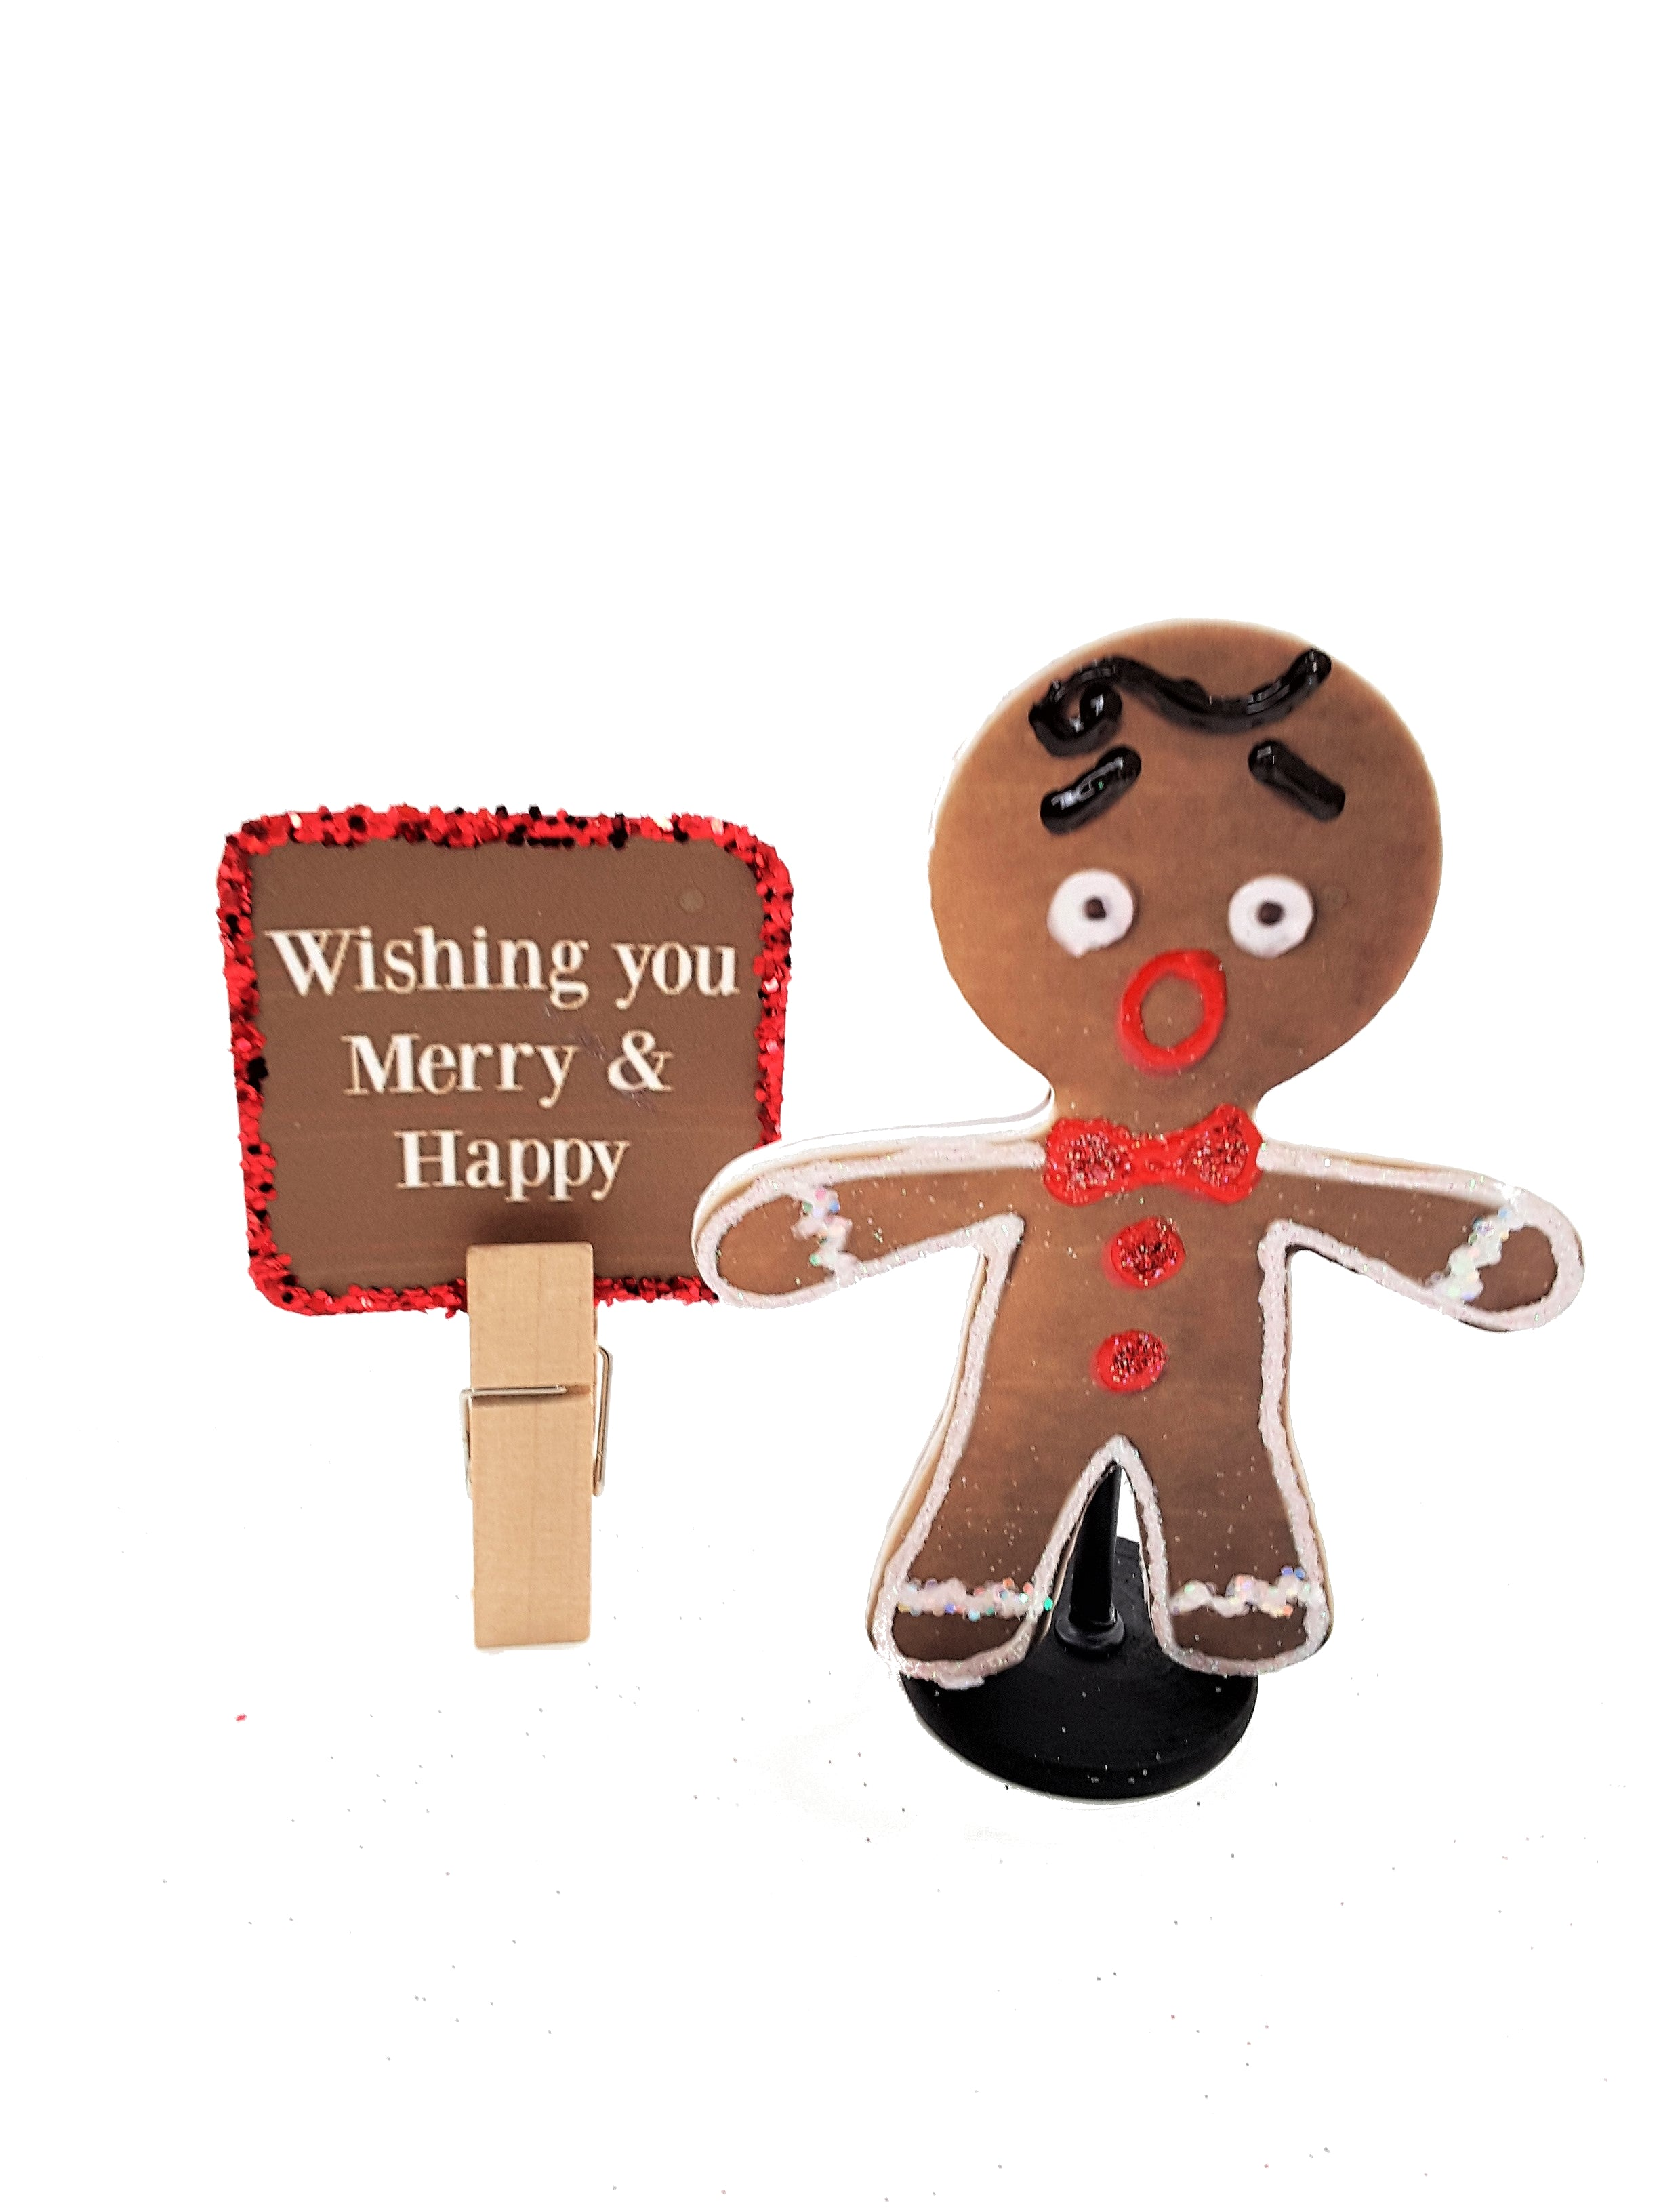 CHRISTMAS GINGERBREAD MAN 3D GREETING CARD GIFT - includes goodies - TheLastWordBish.com